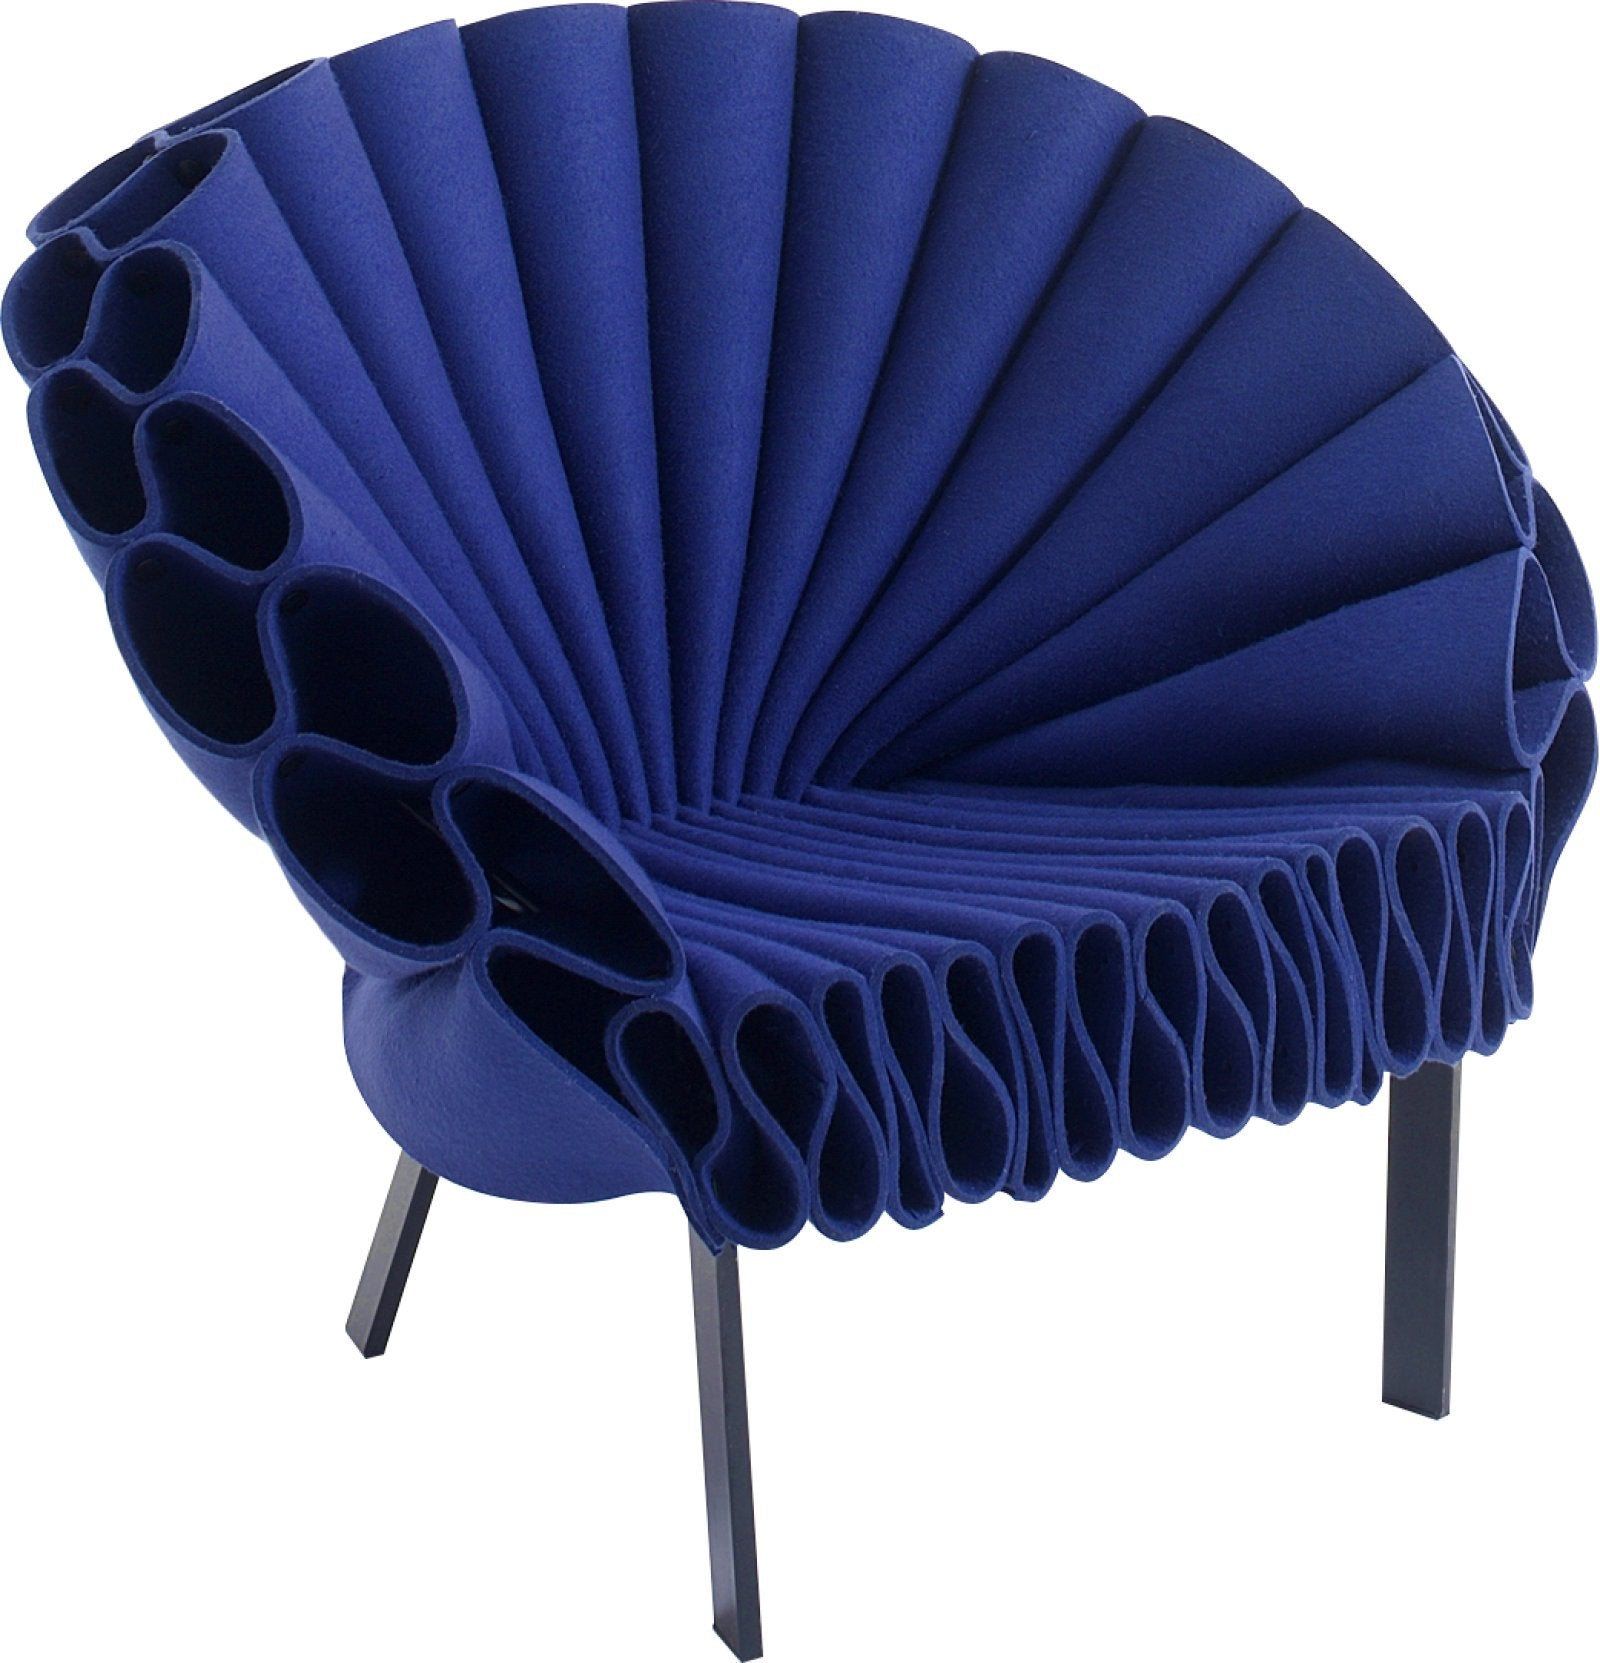 Capellini luxury blue peacock chair. Contemporary furniture and Italian  interior design 94ea6d4665fc